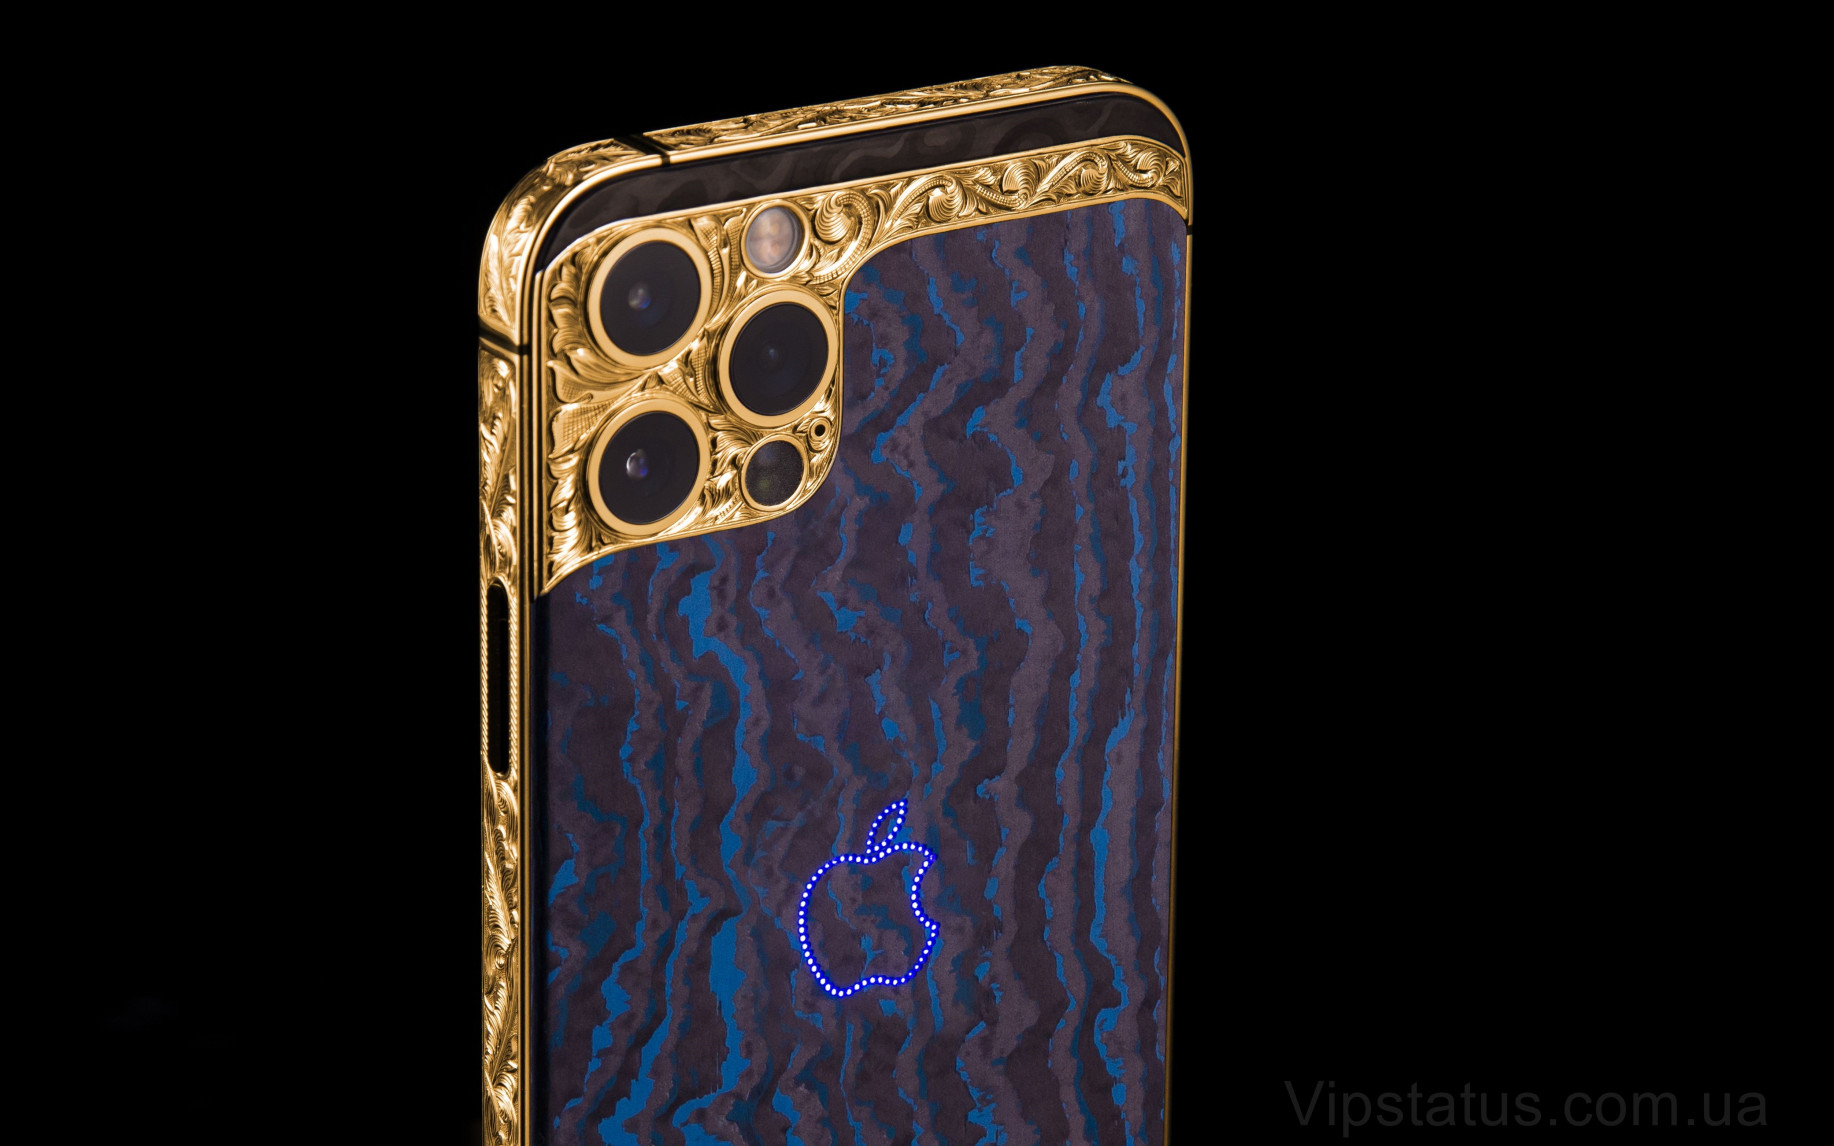 Elite Blue Dream Edition IPHONE 12 PRO MAX 512 GB Blue Dream Edition IPHONE 12 PRO MAX 512 GB image 2